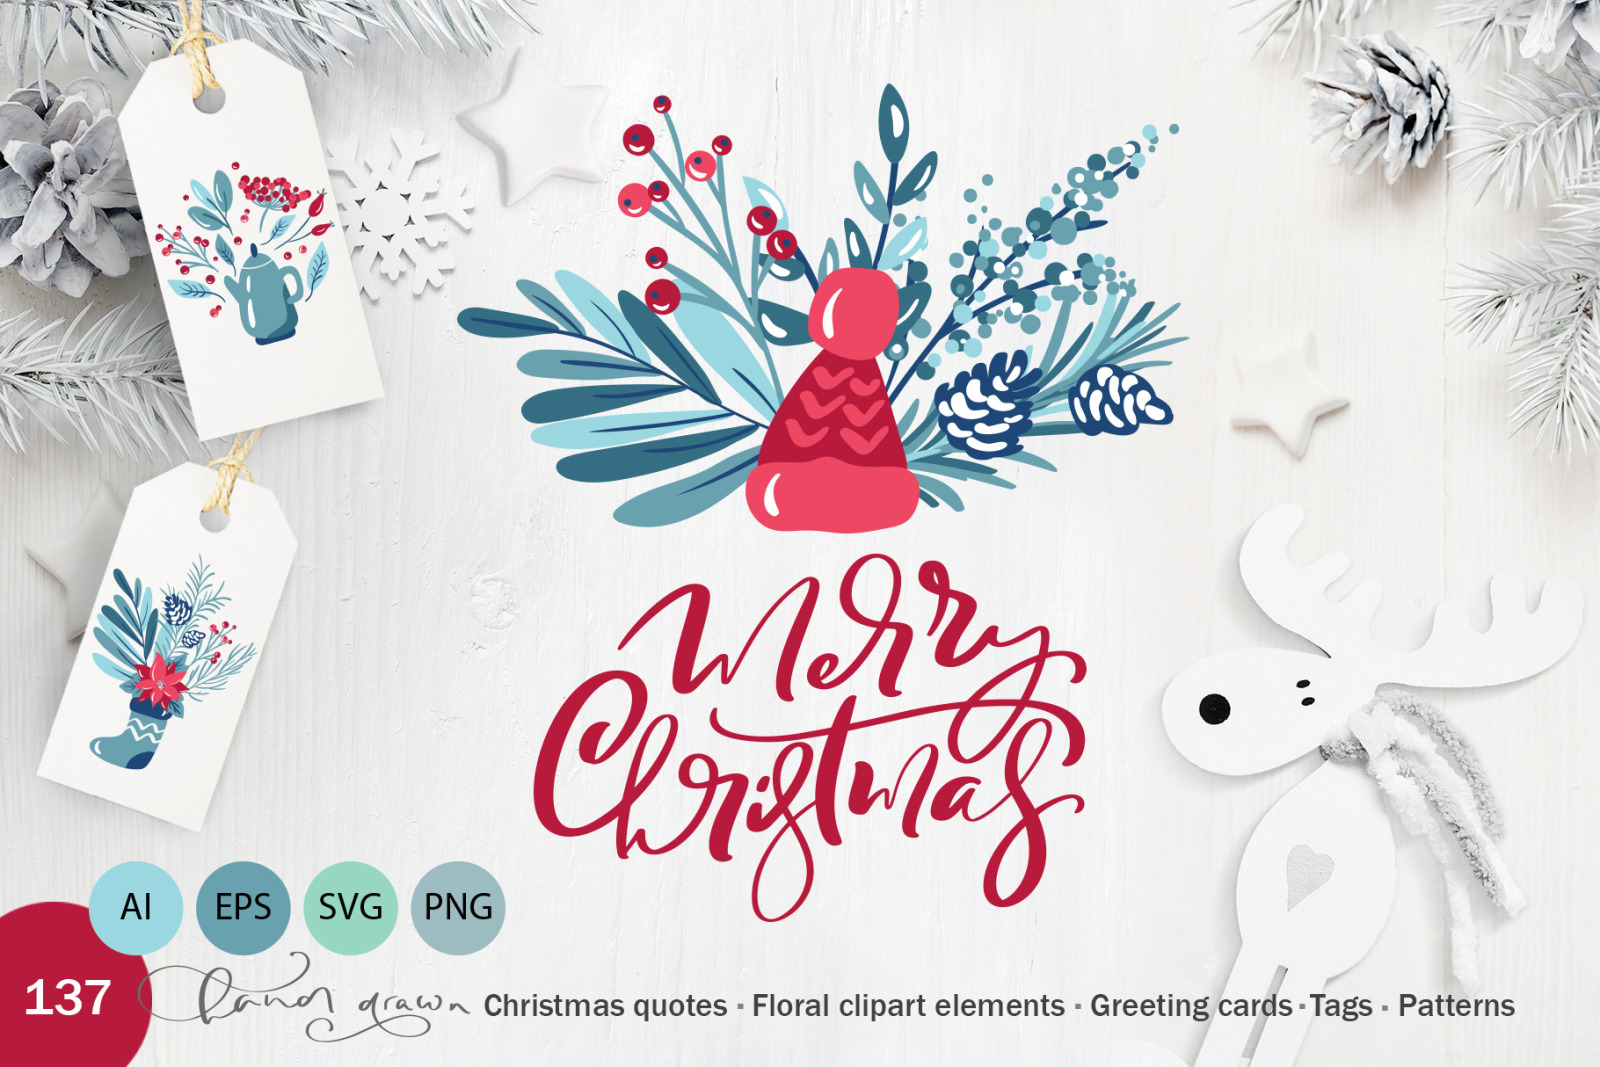 Christmas floral holiday elements